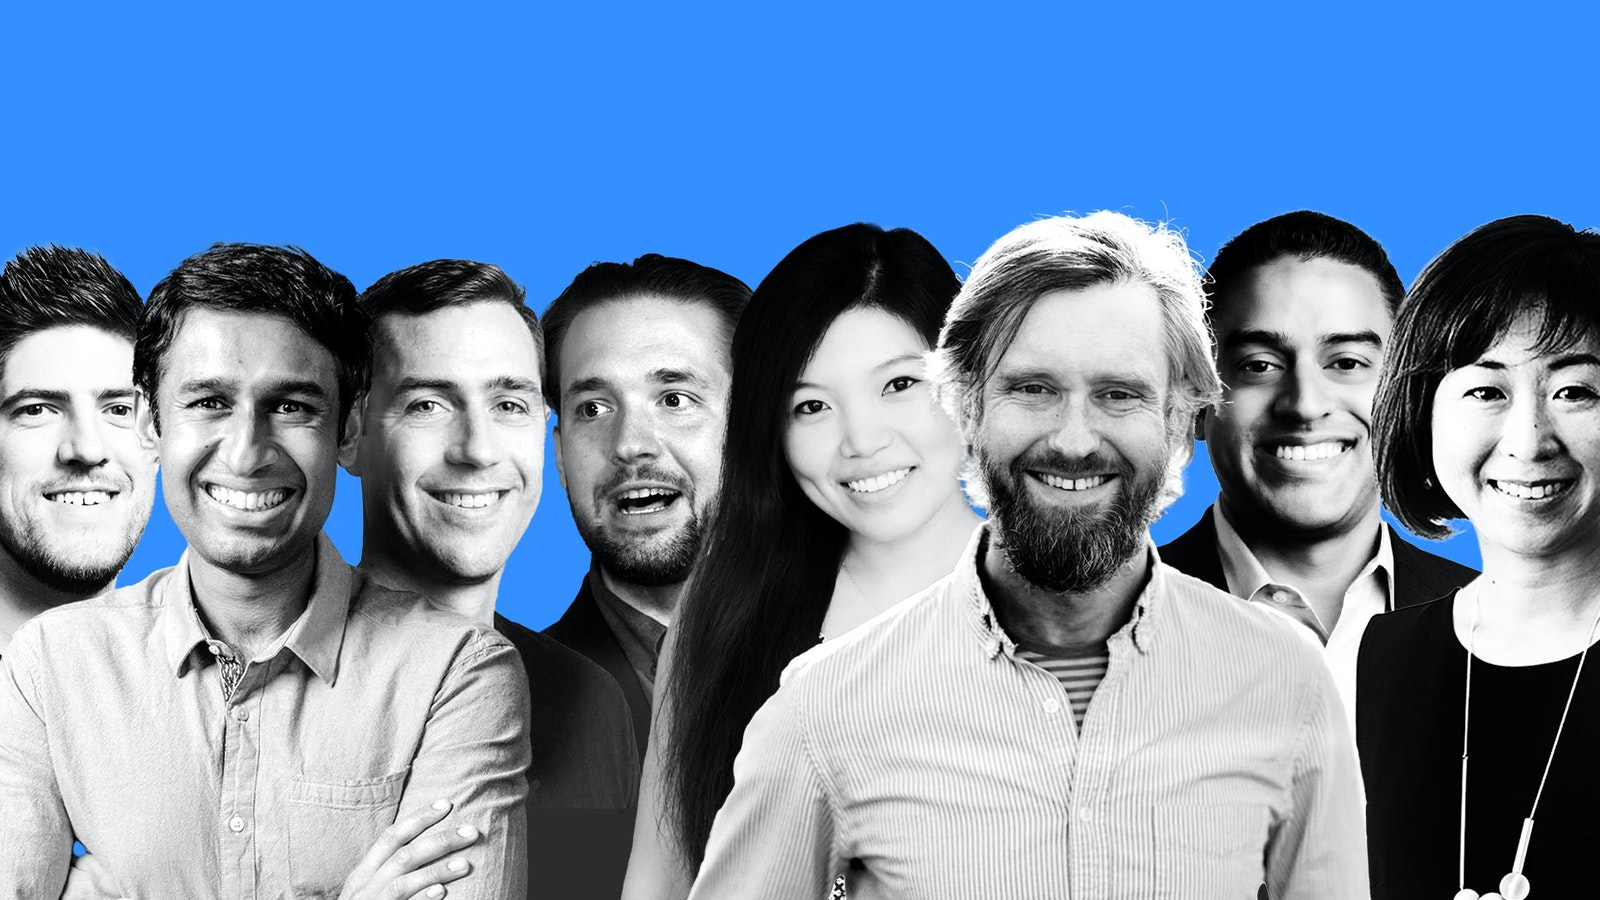 From left to right: Ryan Sarver, Nikhil Basu Trivedi, Phin Barnes, Alexis Ohanian, Li Jin, Andrew Parker, Ajay Vashee and Cat Lee. Photos:  Redpoint Ventures, Shasta Ventures, First Round Capital, Initialized Capital, Dropbox, Maveron.